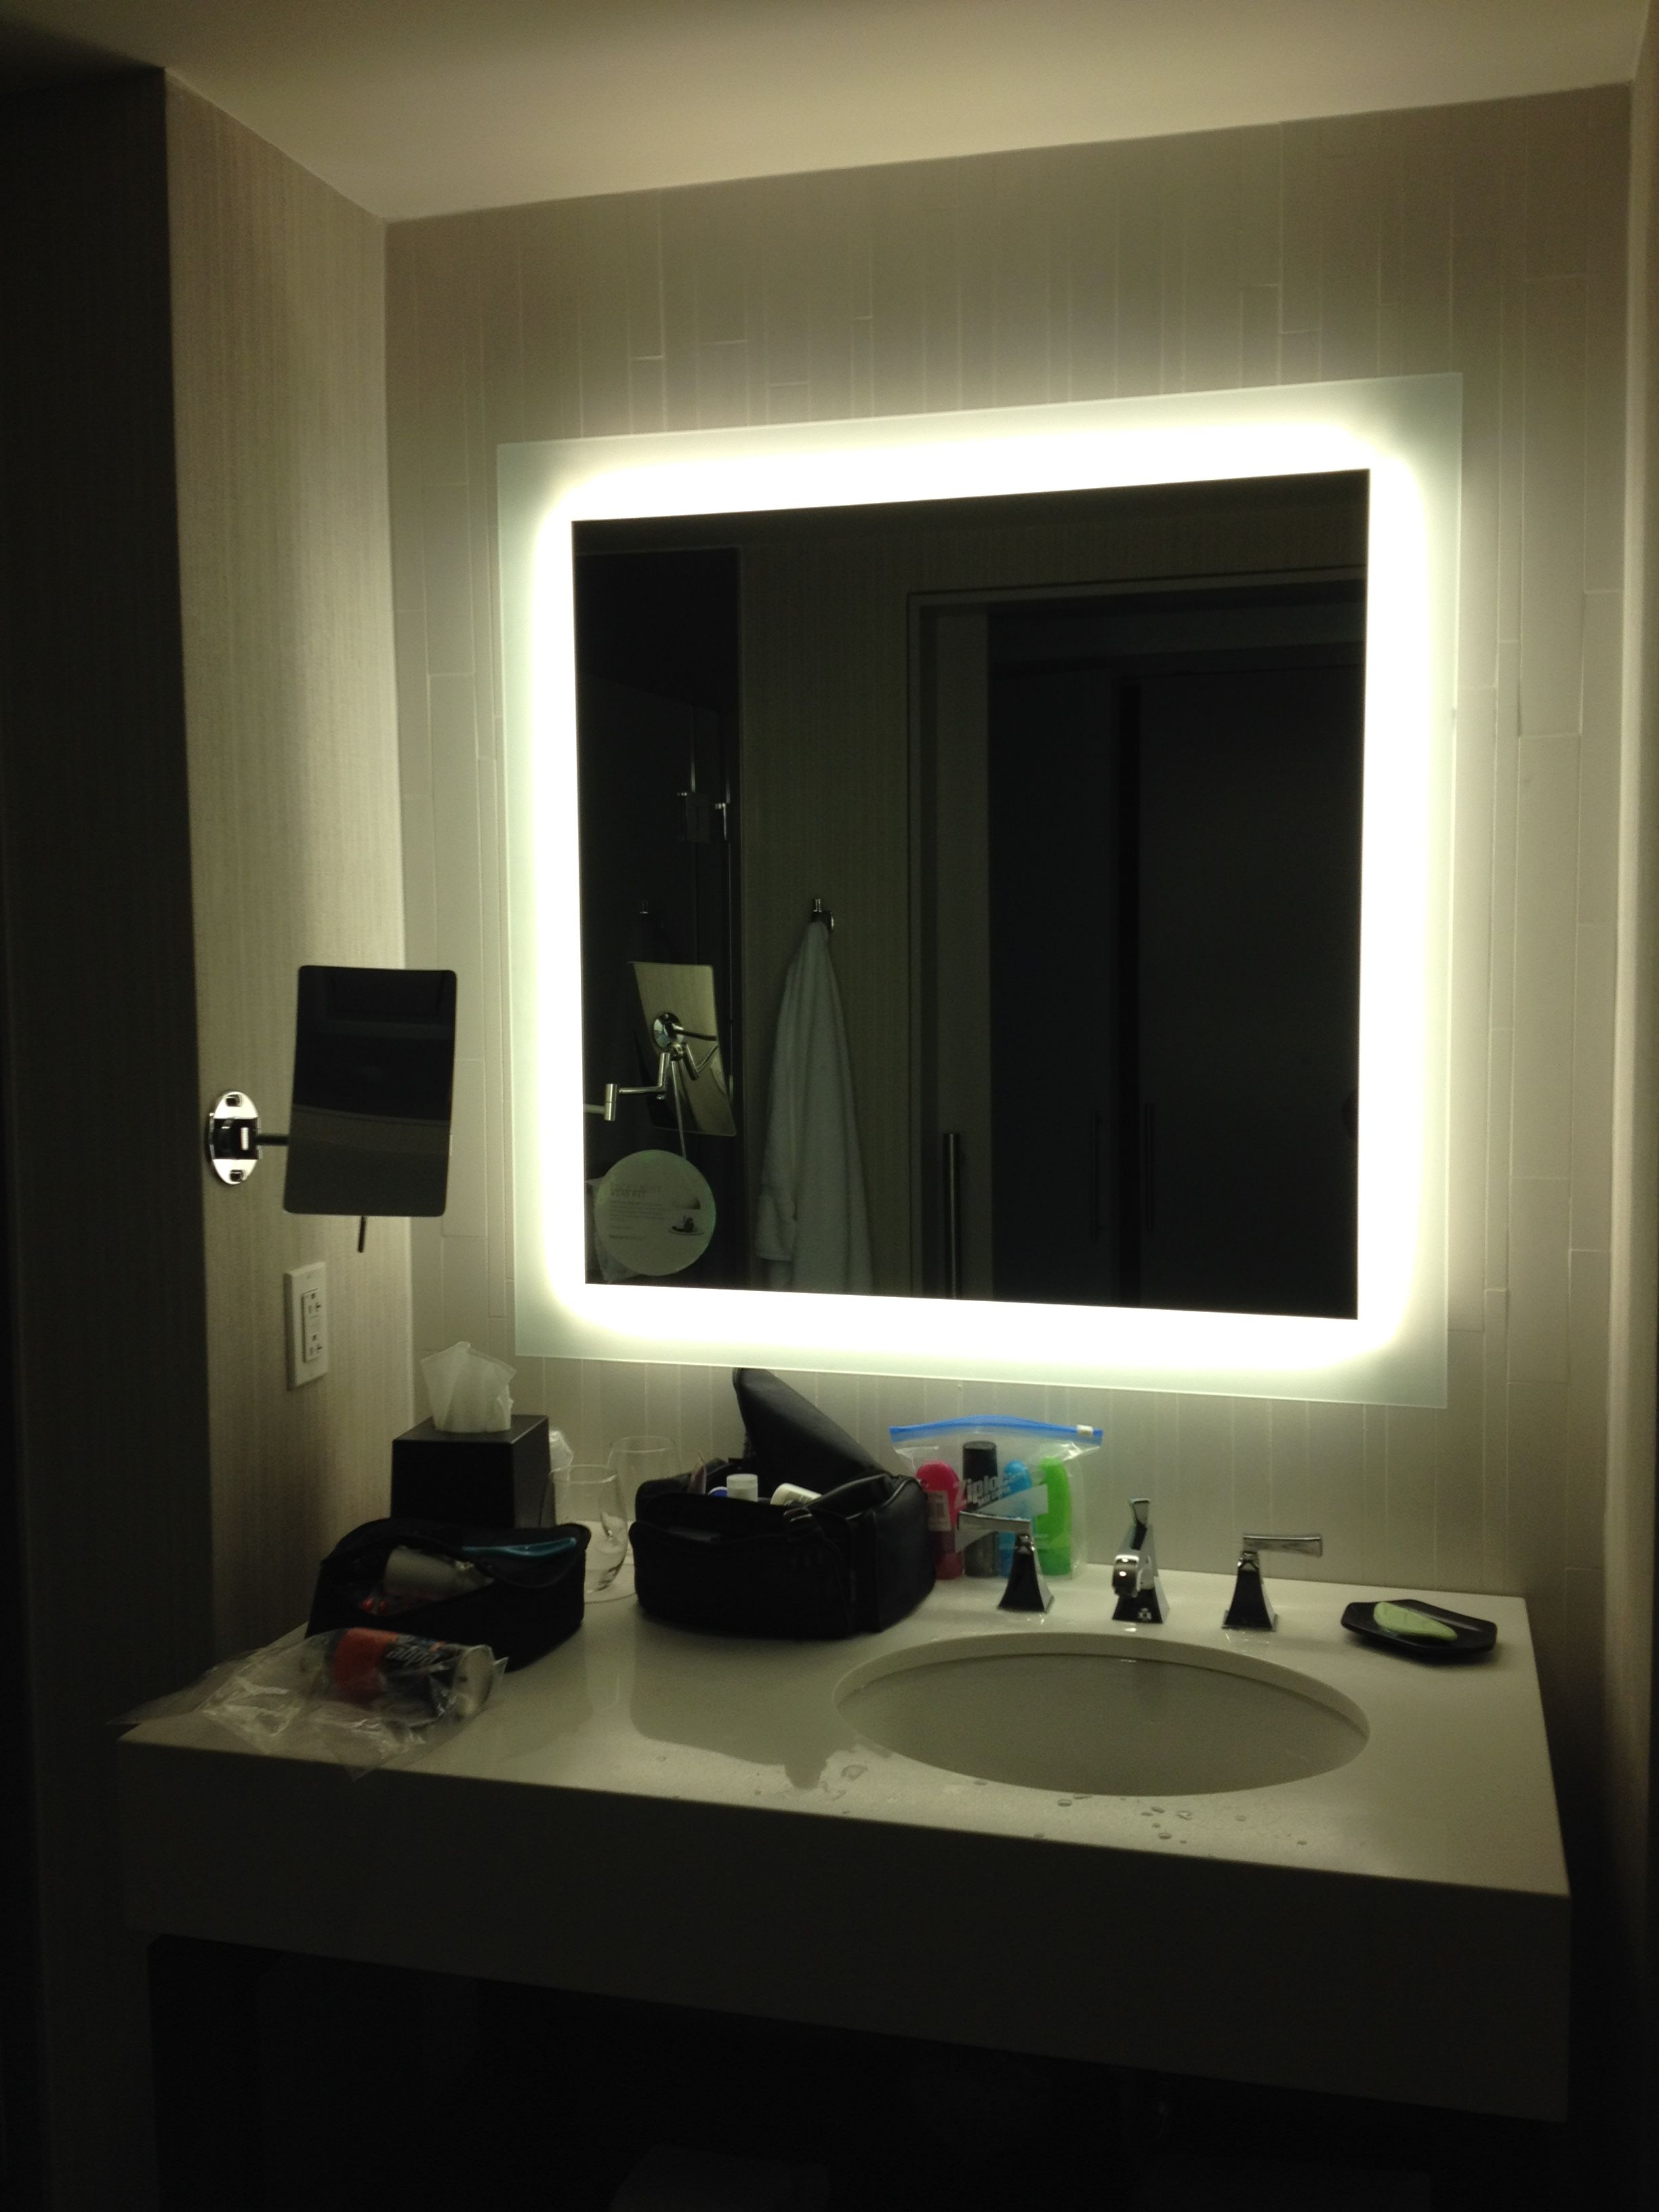 This Bathroom Mirror Light Was Like Doing Makeup With A